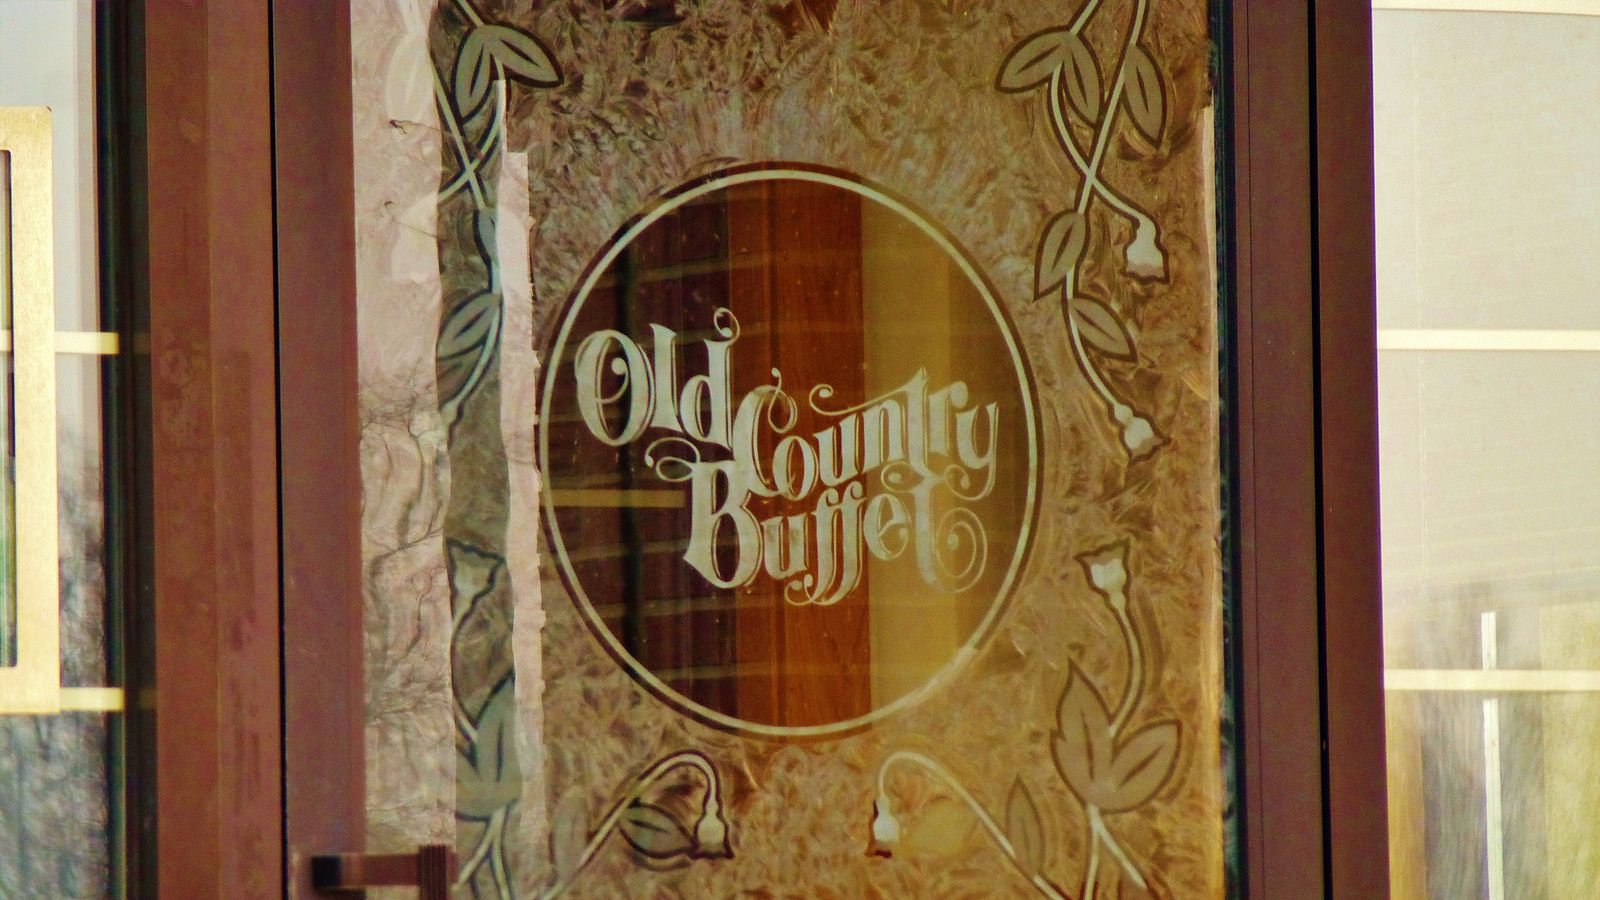 Old Country Buffet - West Fullerton Avenue, Chicago, Illinois - Rated 4 based on Reviews